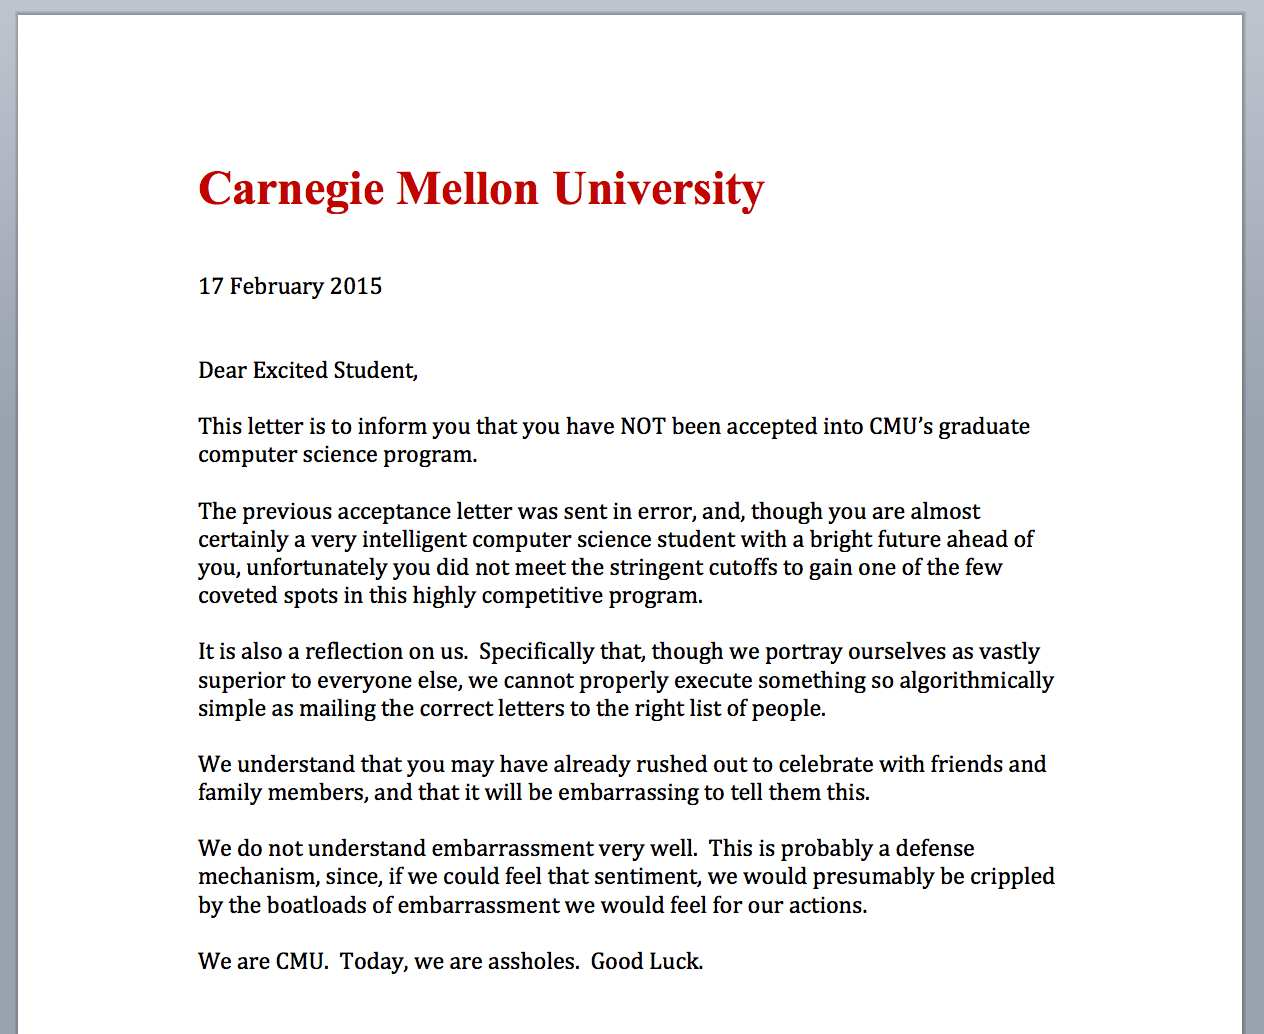 letter sent by cmu after mistakenly sending acceptance letters to oops